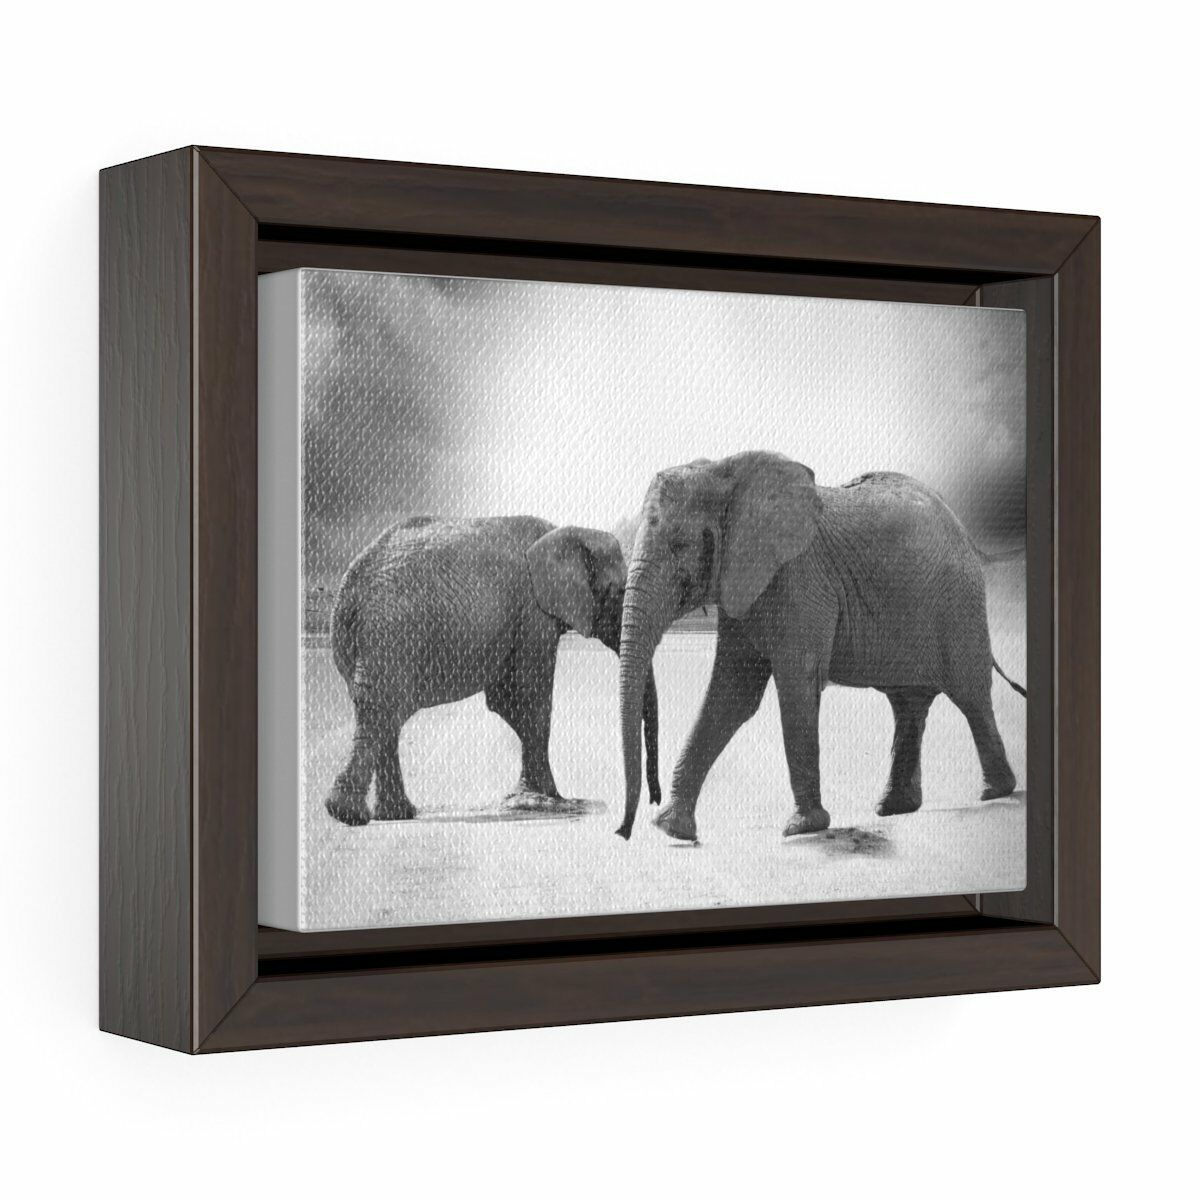 Never Forget Horizontal Framed Premium Gallery Wrap Canvas